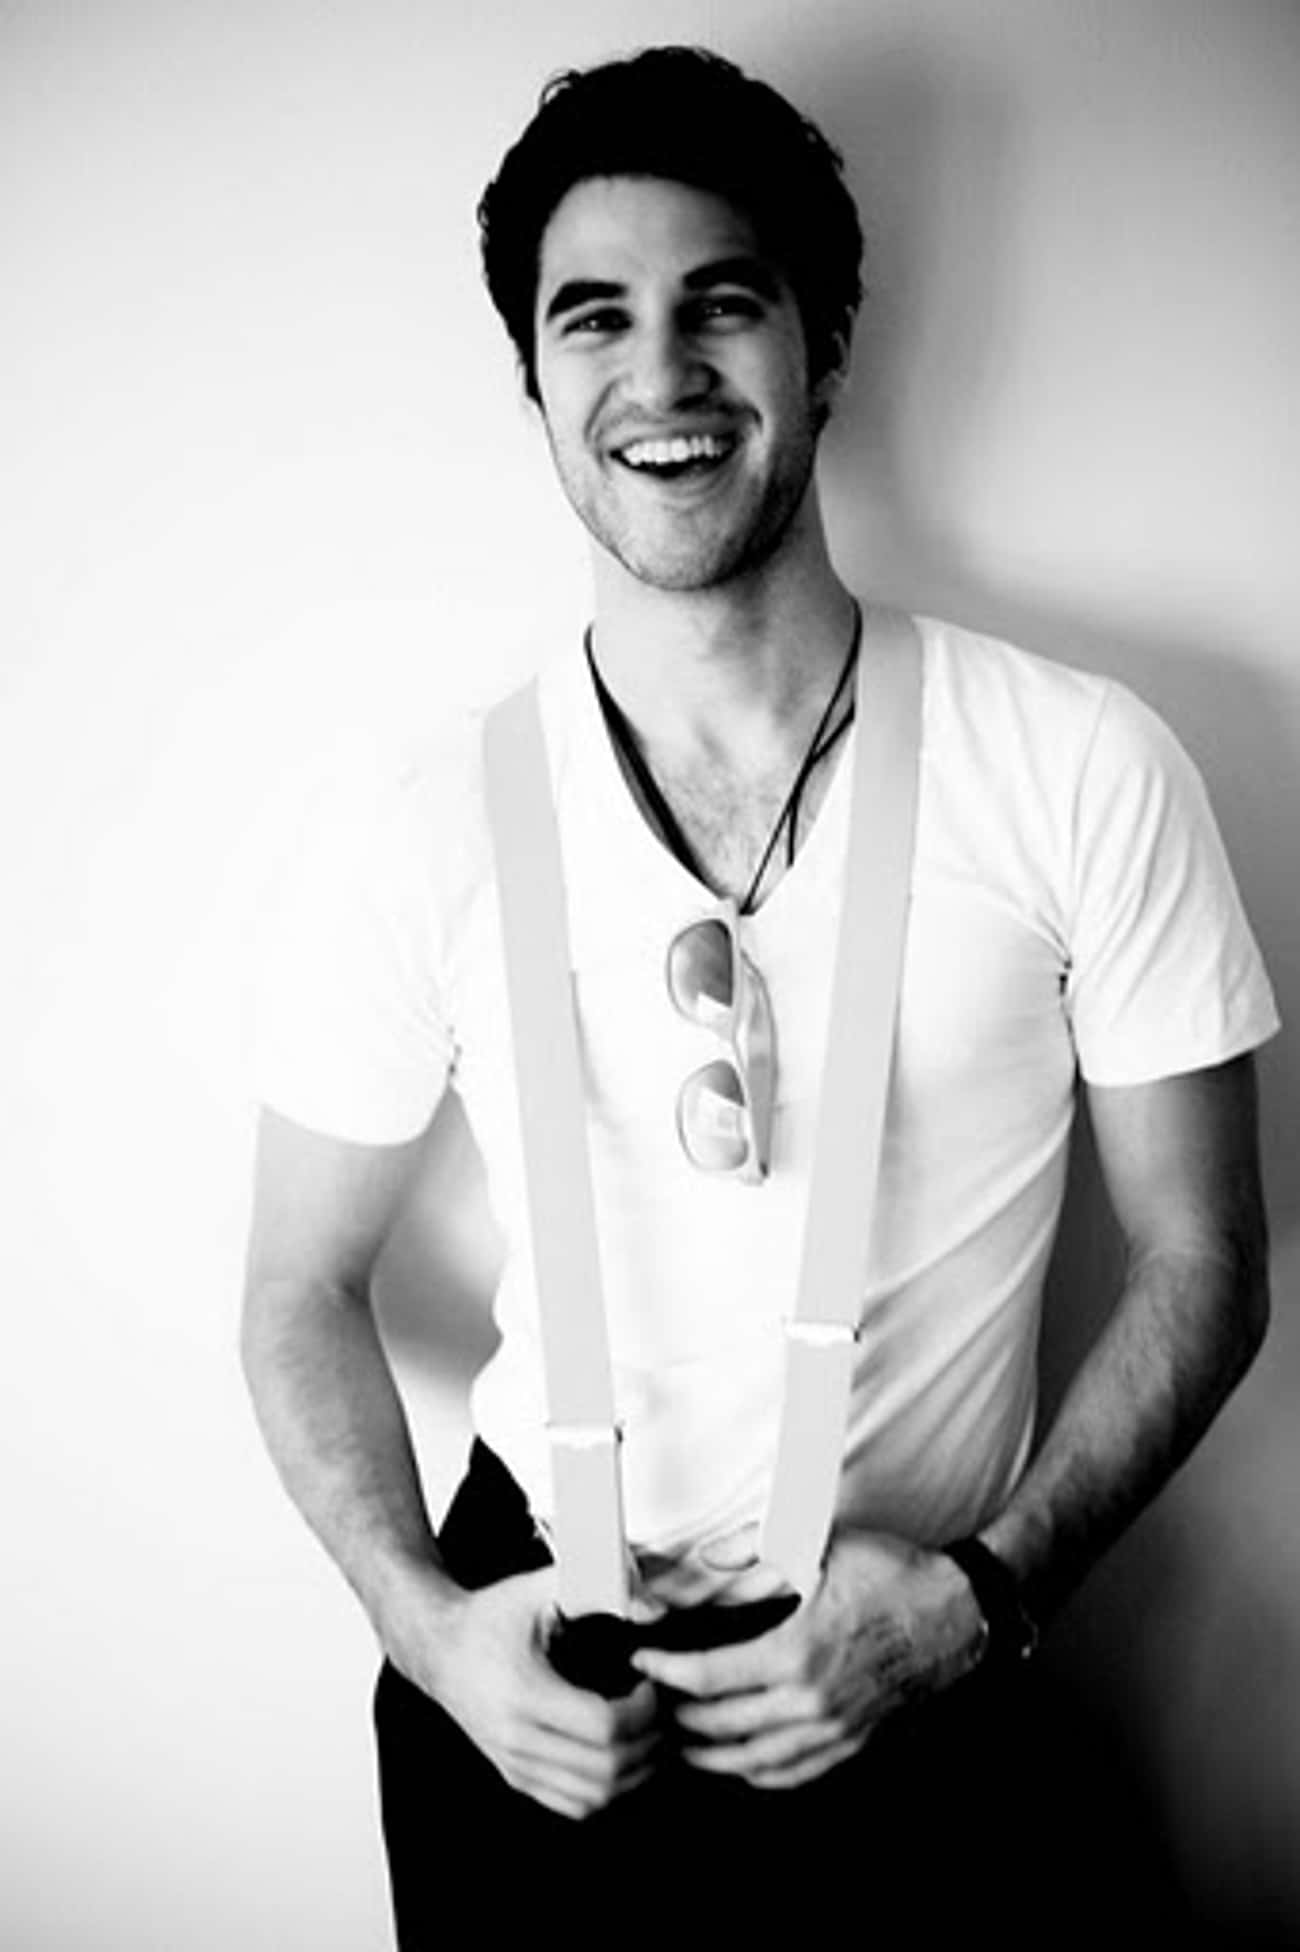 Darren Criss in V-Neck T-Shirt is listed (or ranked) 4 on the list Hot Darren Criss Photos